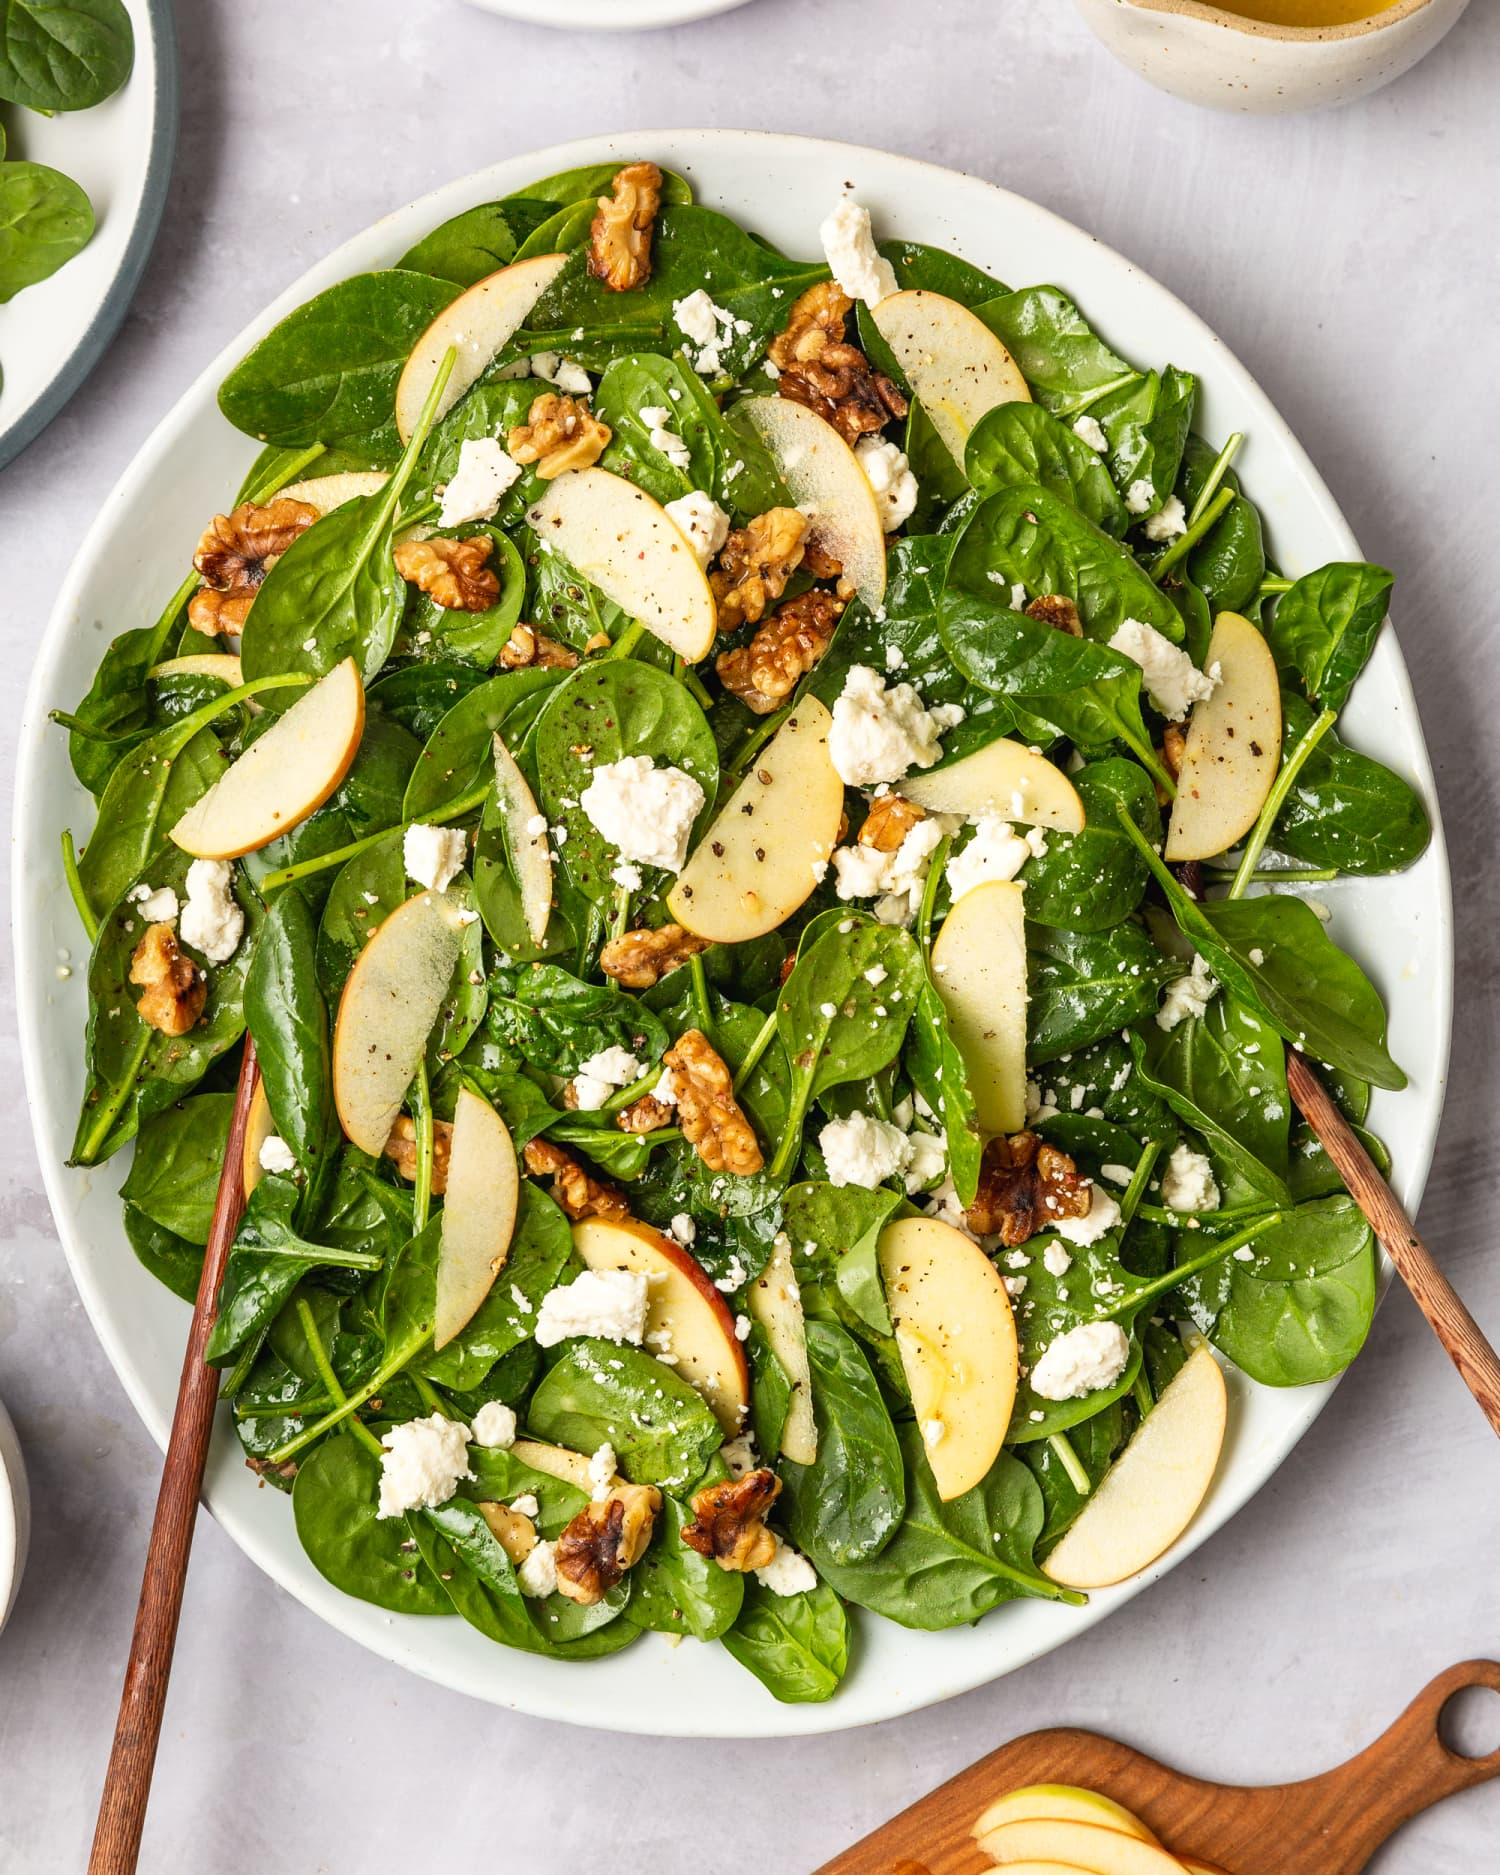 Recipe: Easy Spinach Salad with Apples, Walnuts, and Feta